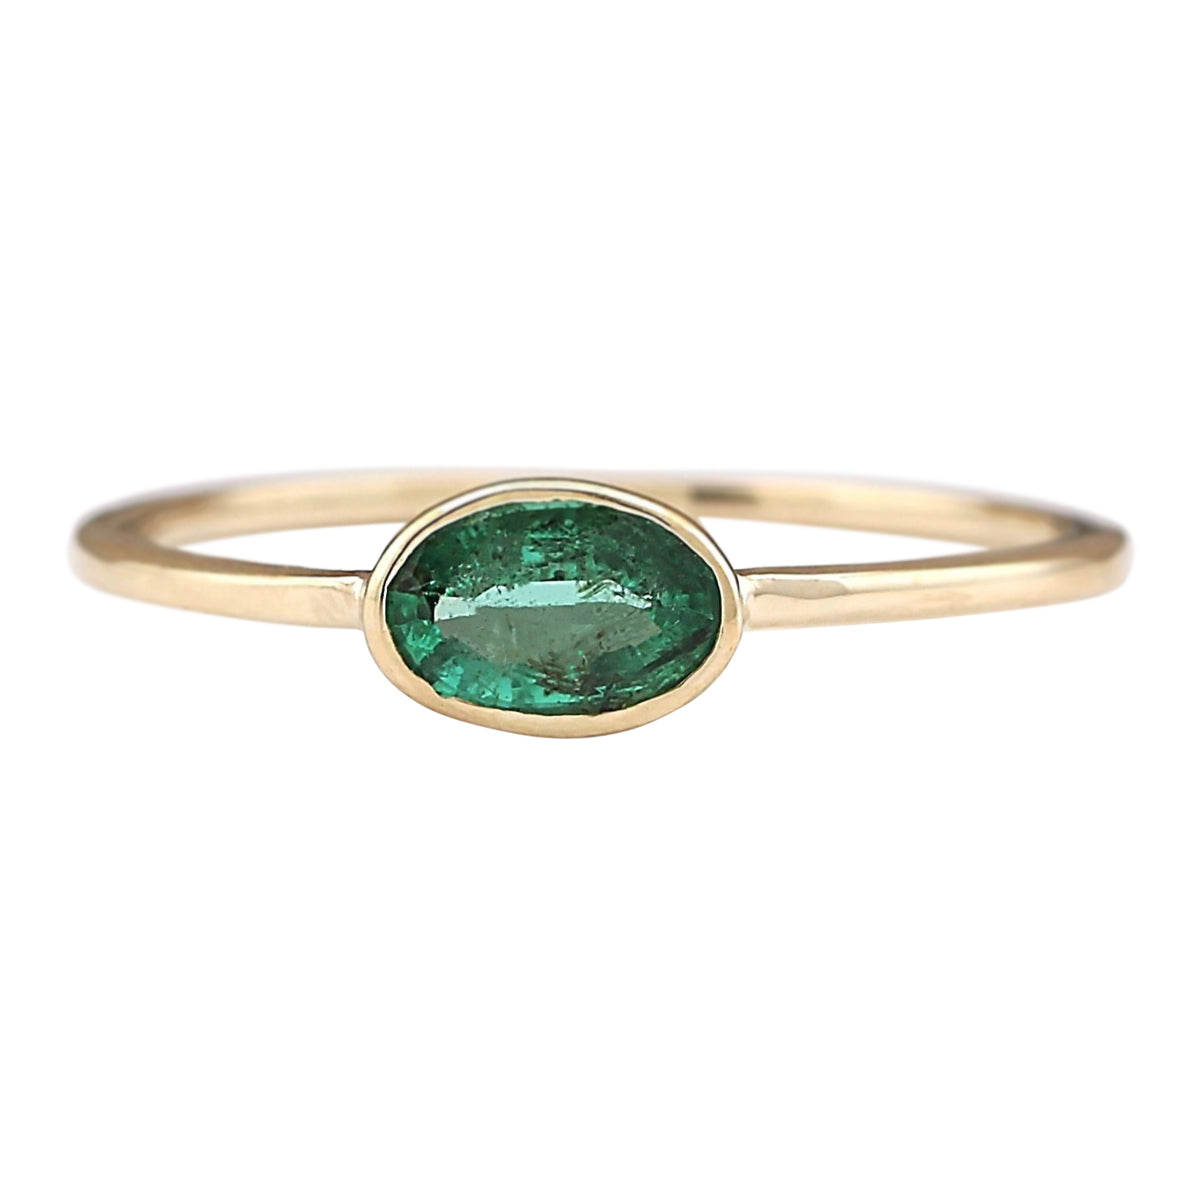 0.50 Carat Natural Emerald 14K Yellow Gold Ring